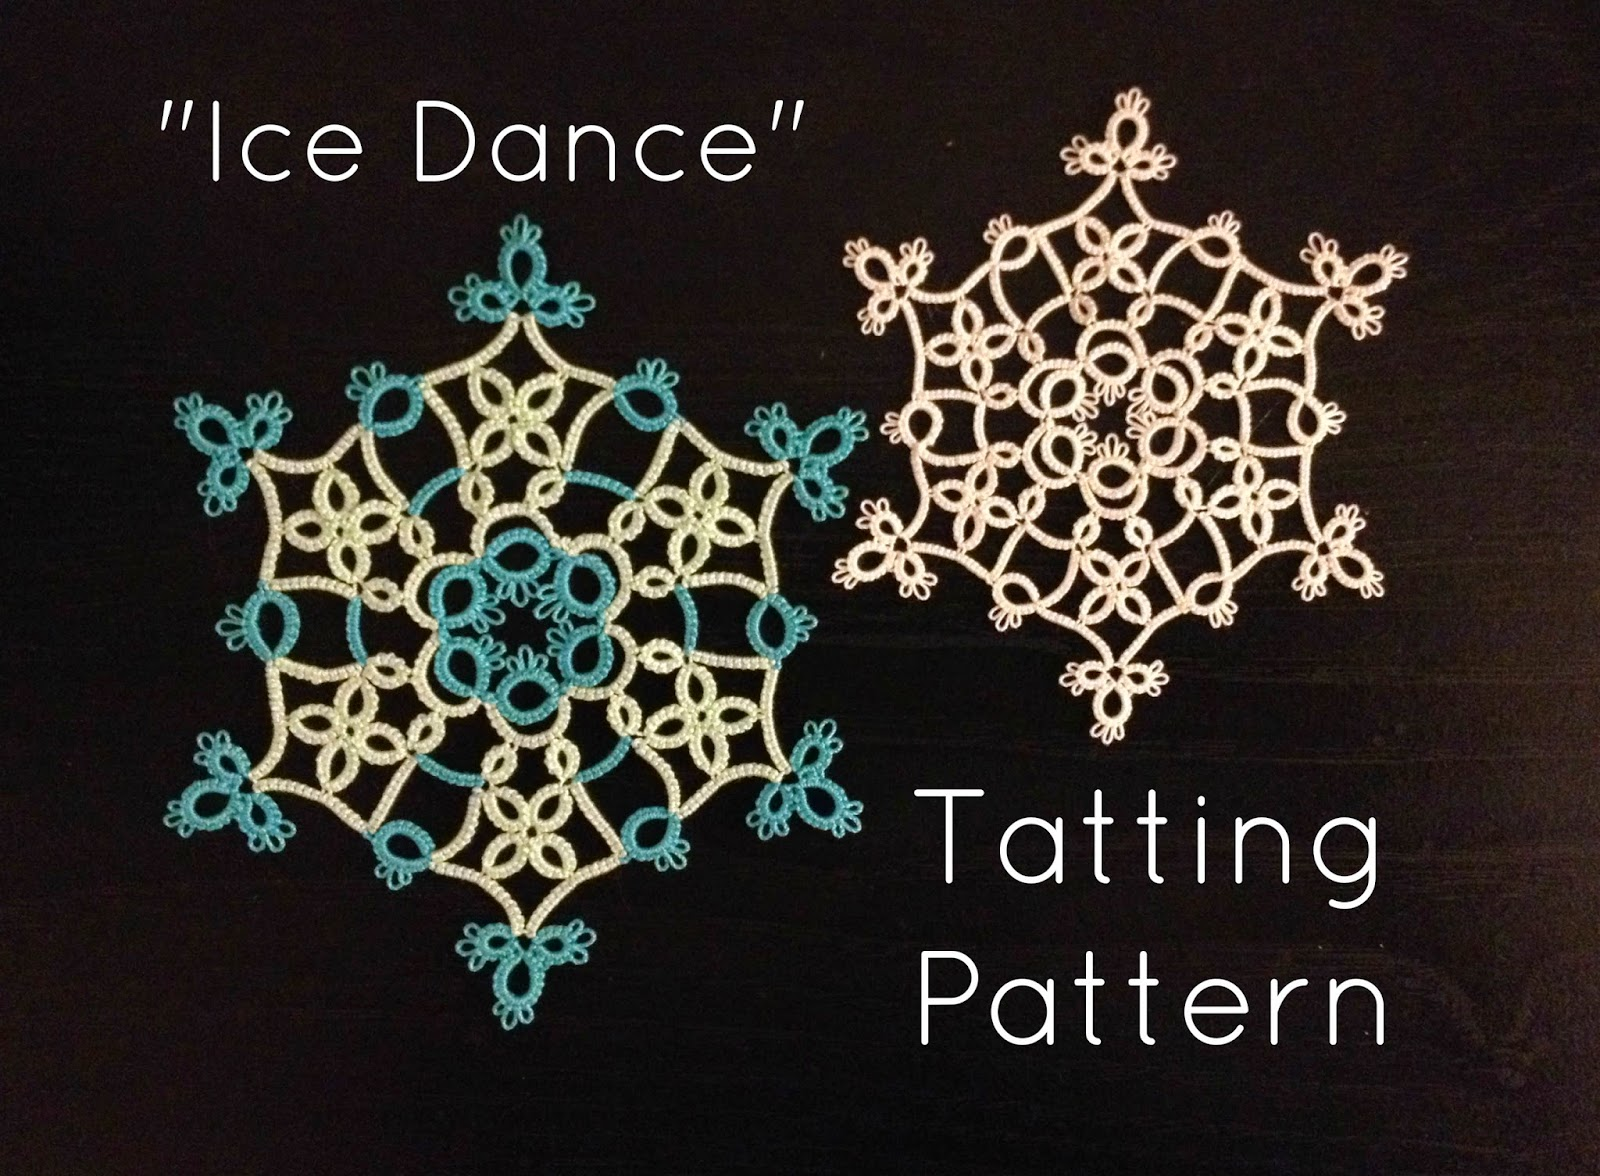 https://www.etsy.com/listing/203082883/snowflake-tatting-pattern-ice-dance?